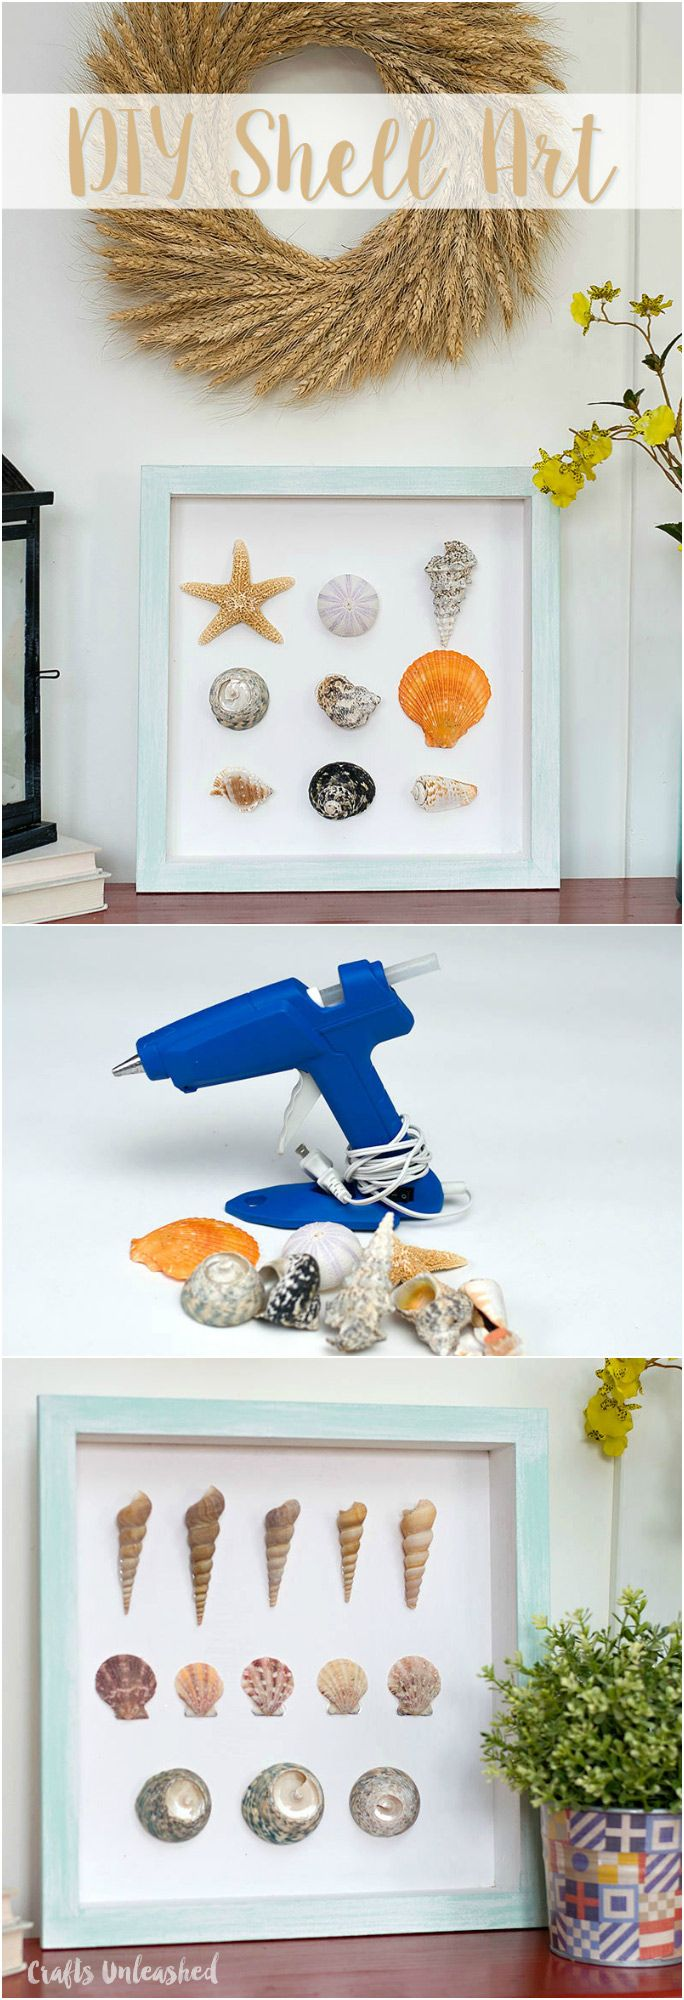 DIY Shell Specimen Wall Art